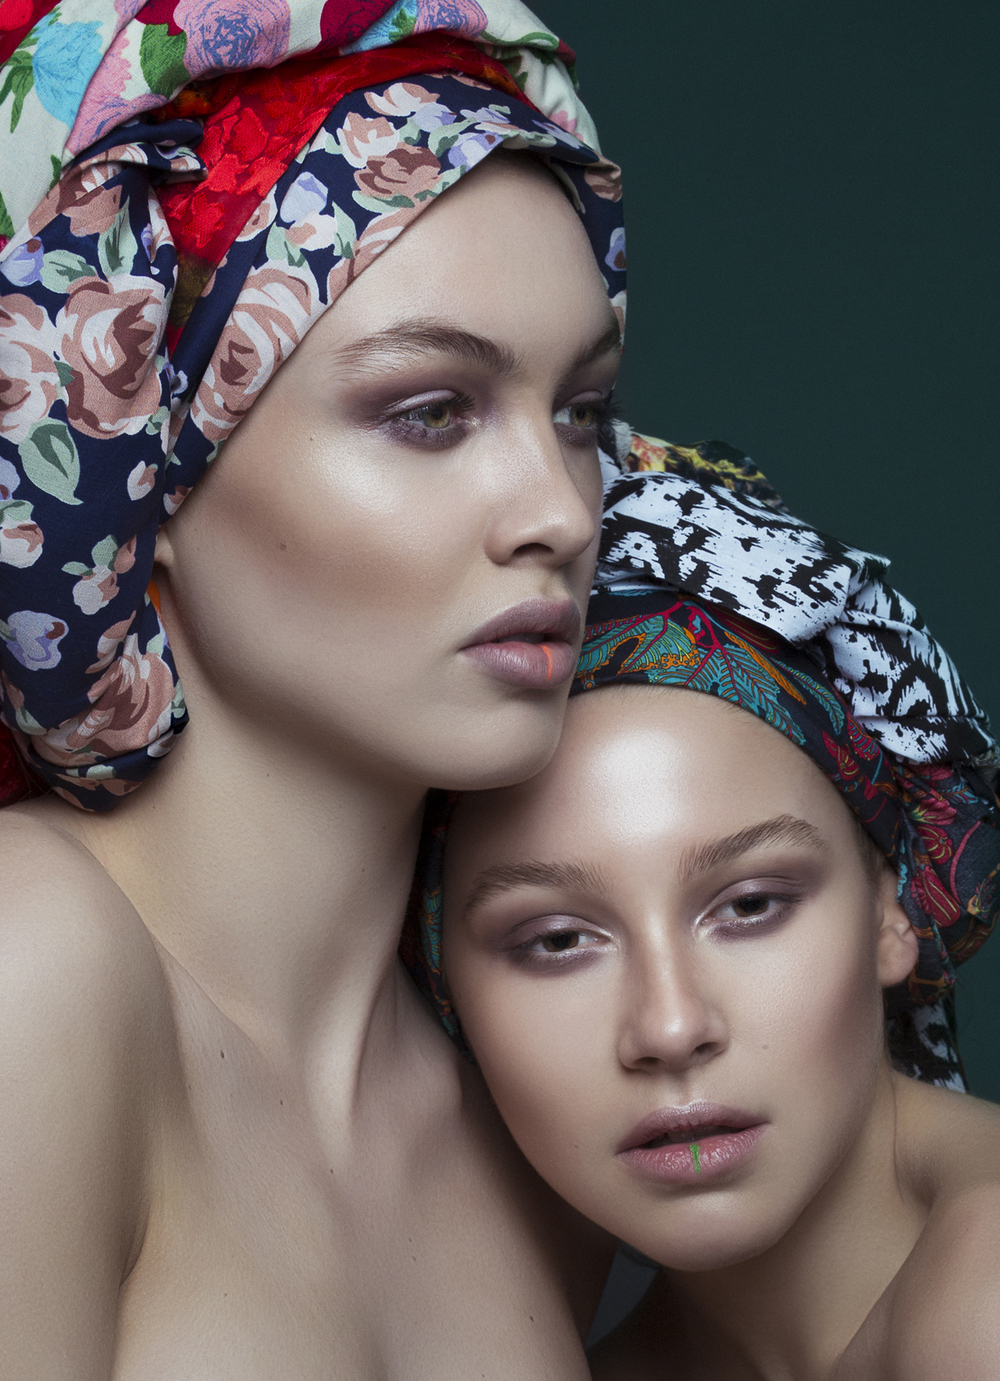 Another of my Beauty Editorial Highlights, Artist Ali Price.